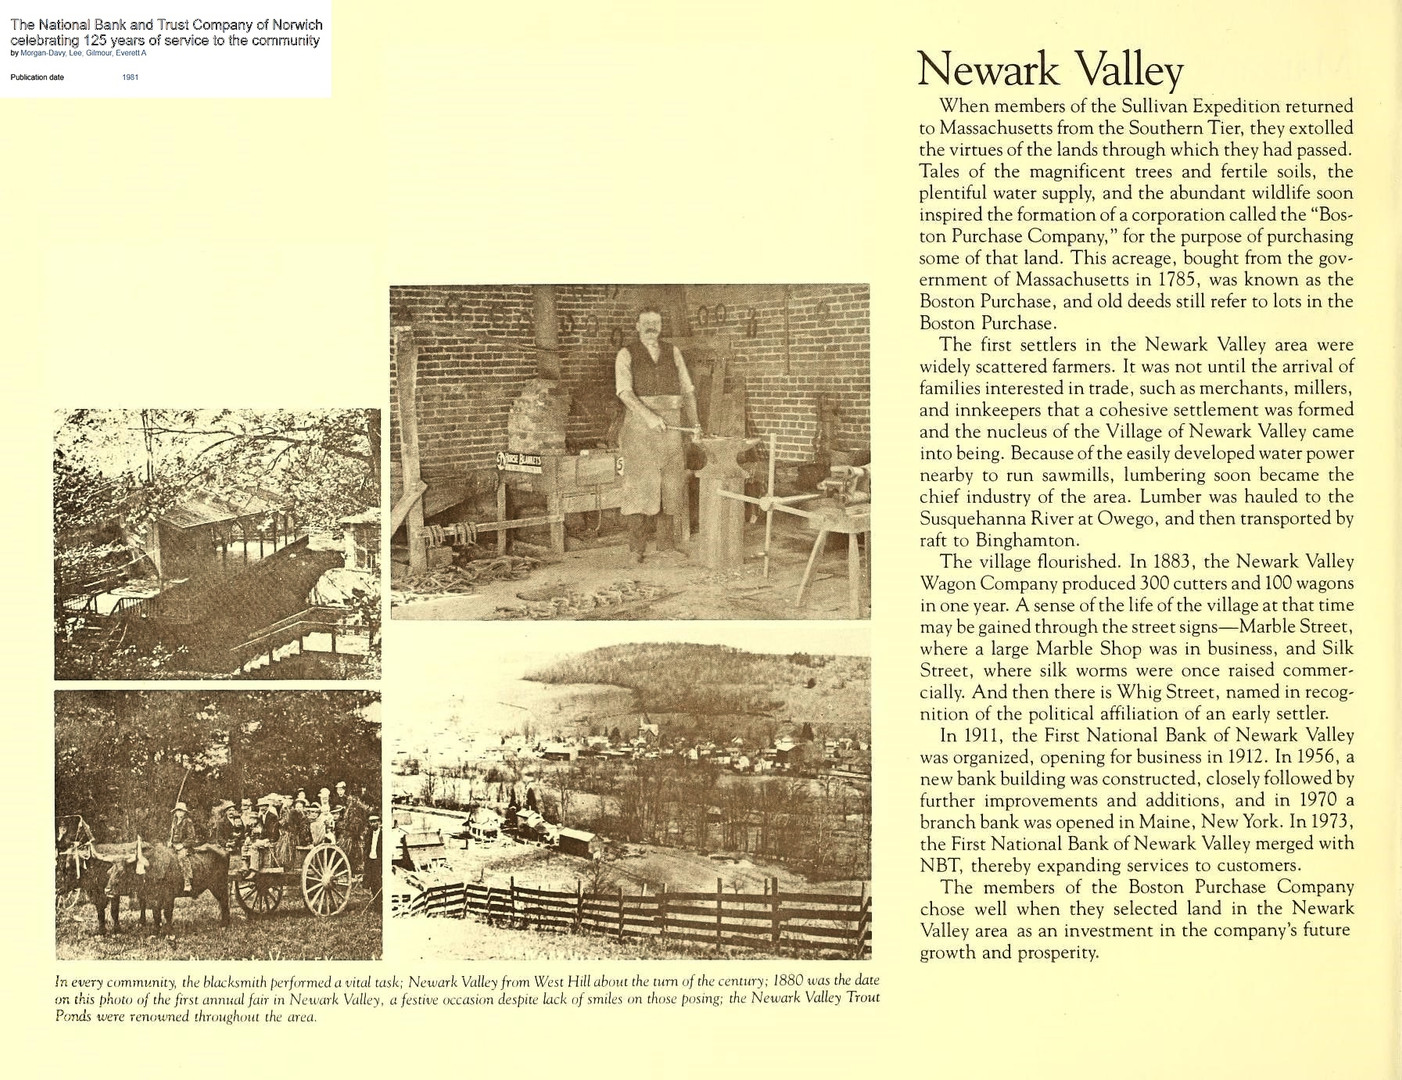 Newark Valley in old times